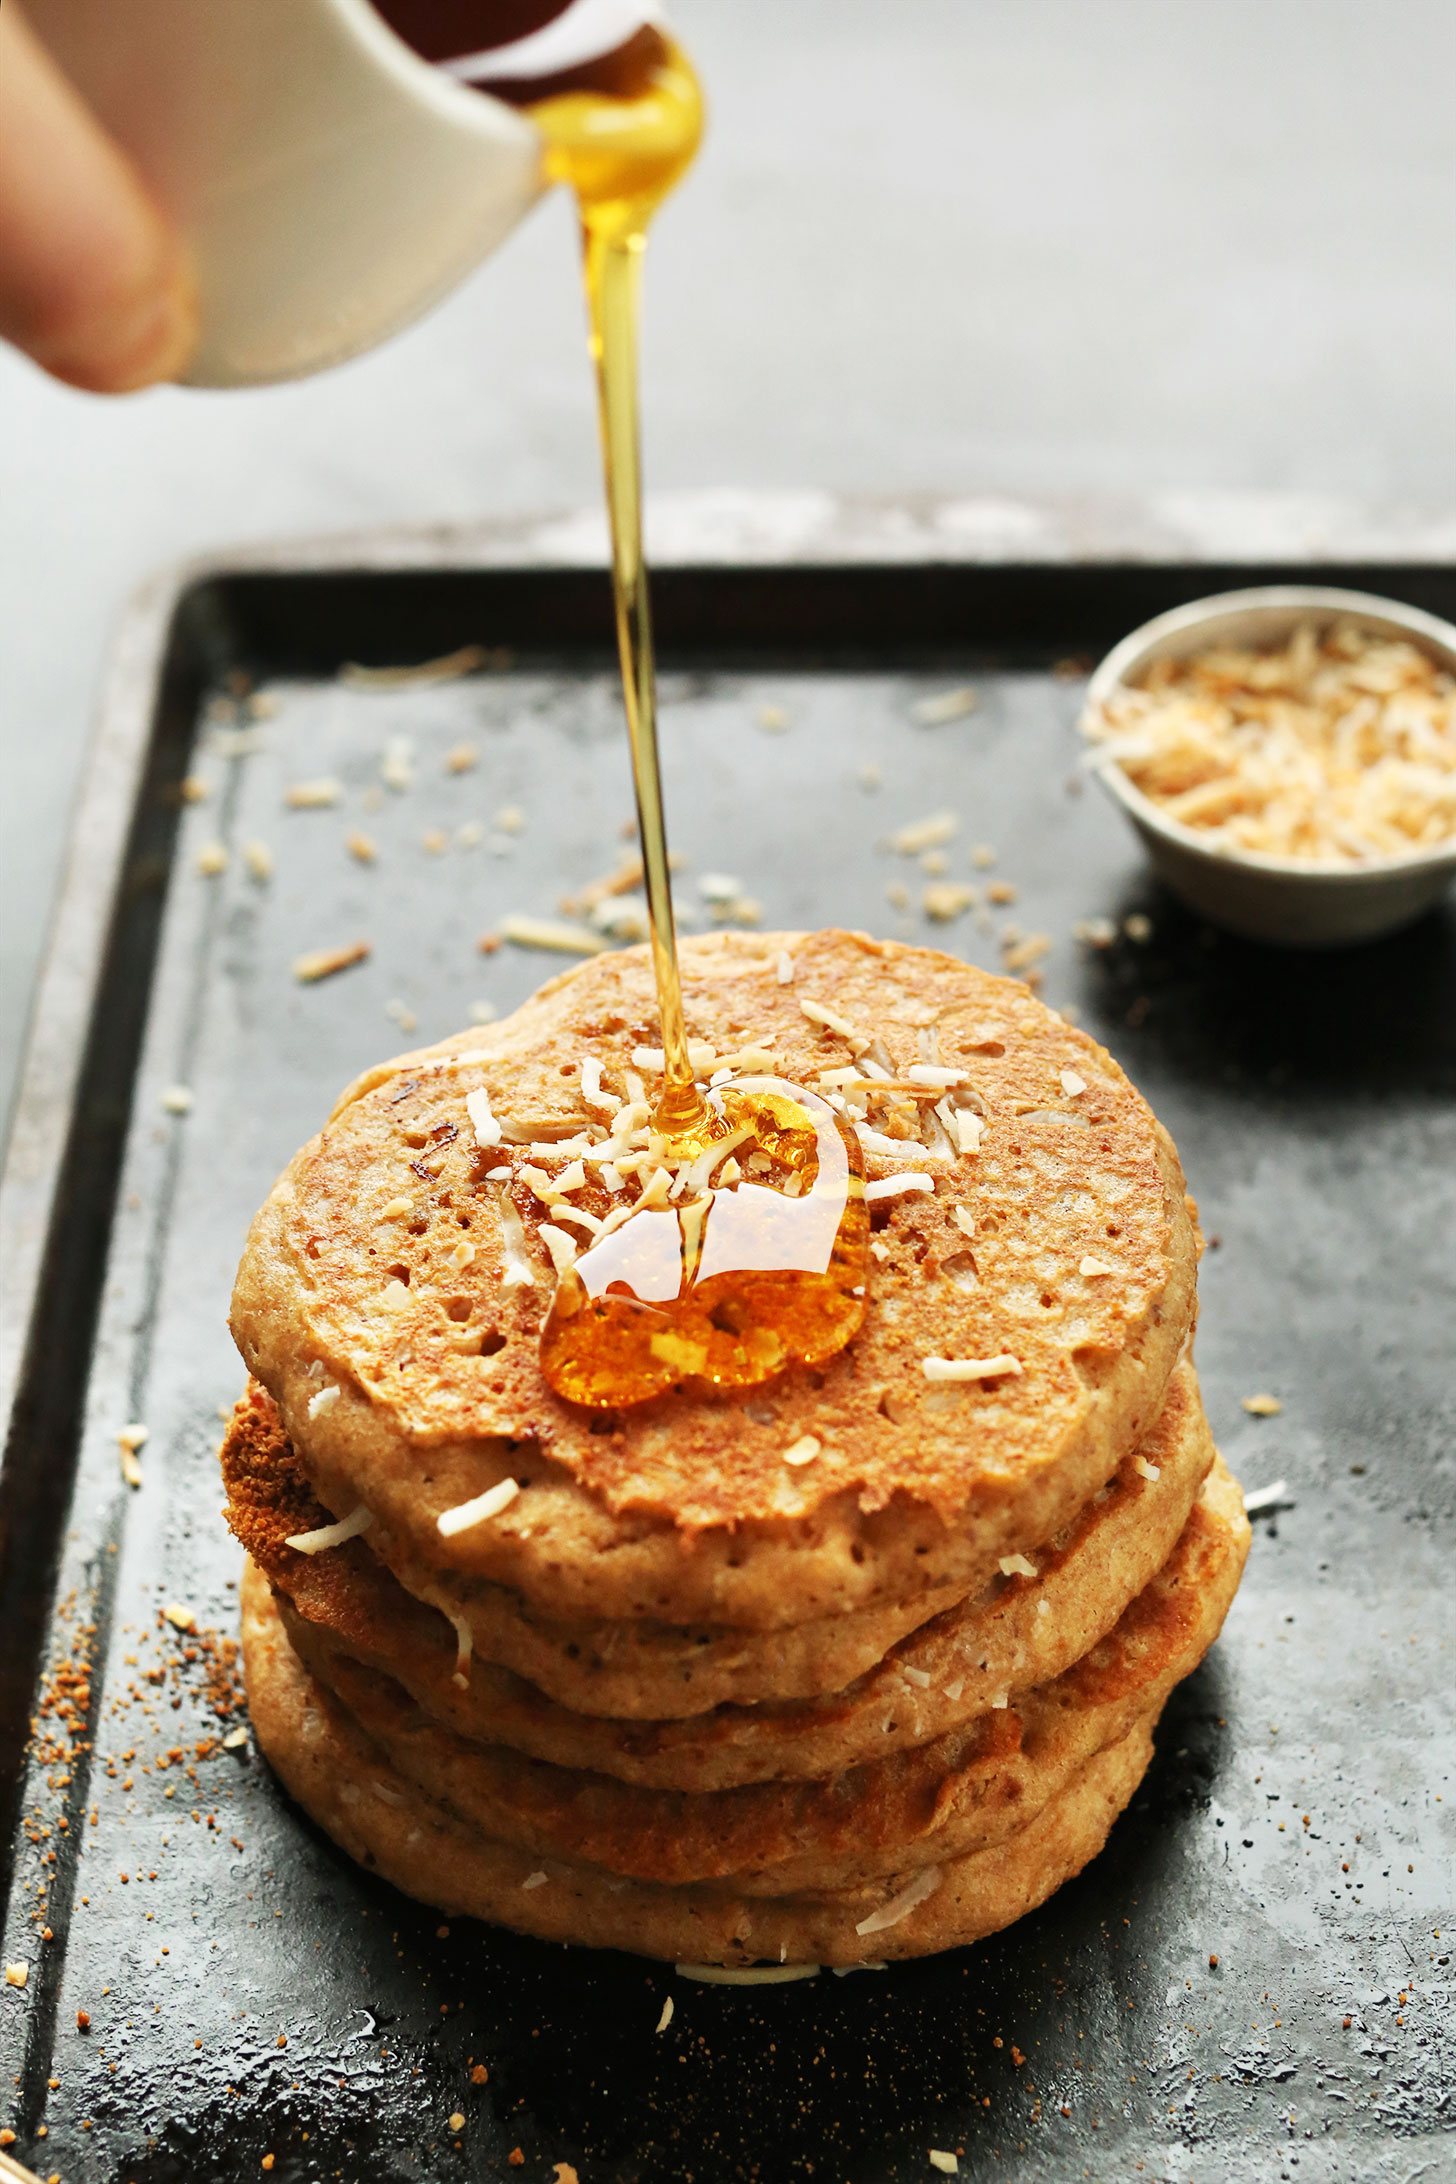 AMAZING VEGAN Toasted Coconut Pancakes aka Better Than Sex PANCAKES! So delicious, fluffy, and coconutty. #vegan #breakfast #pancakes #recipe #minimalistbaker